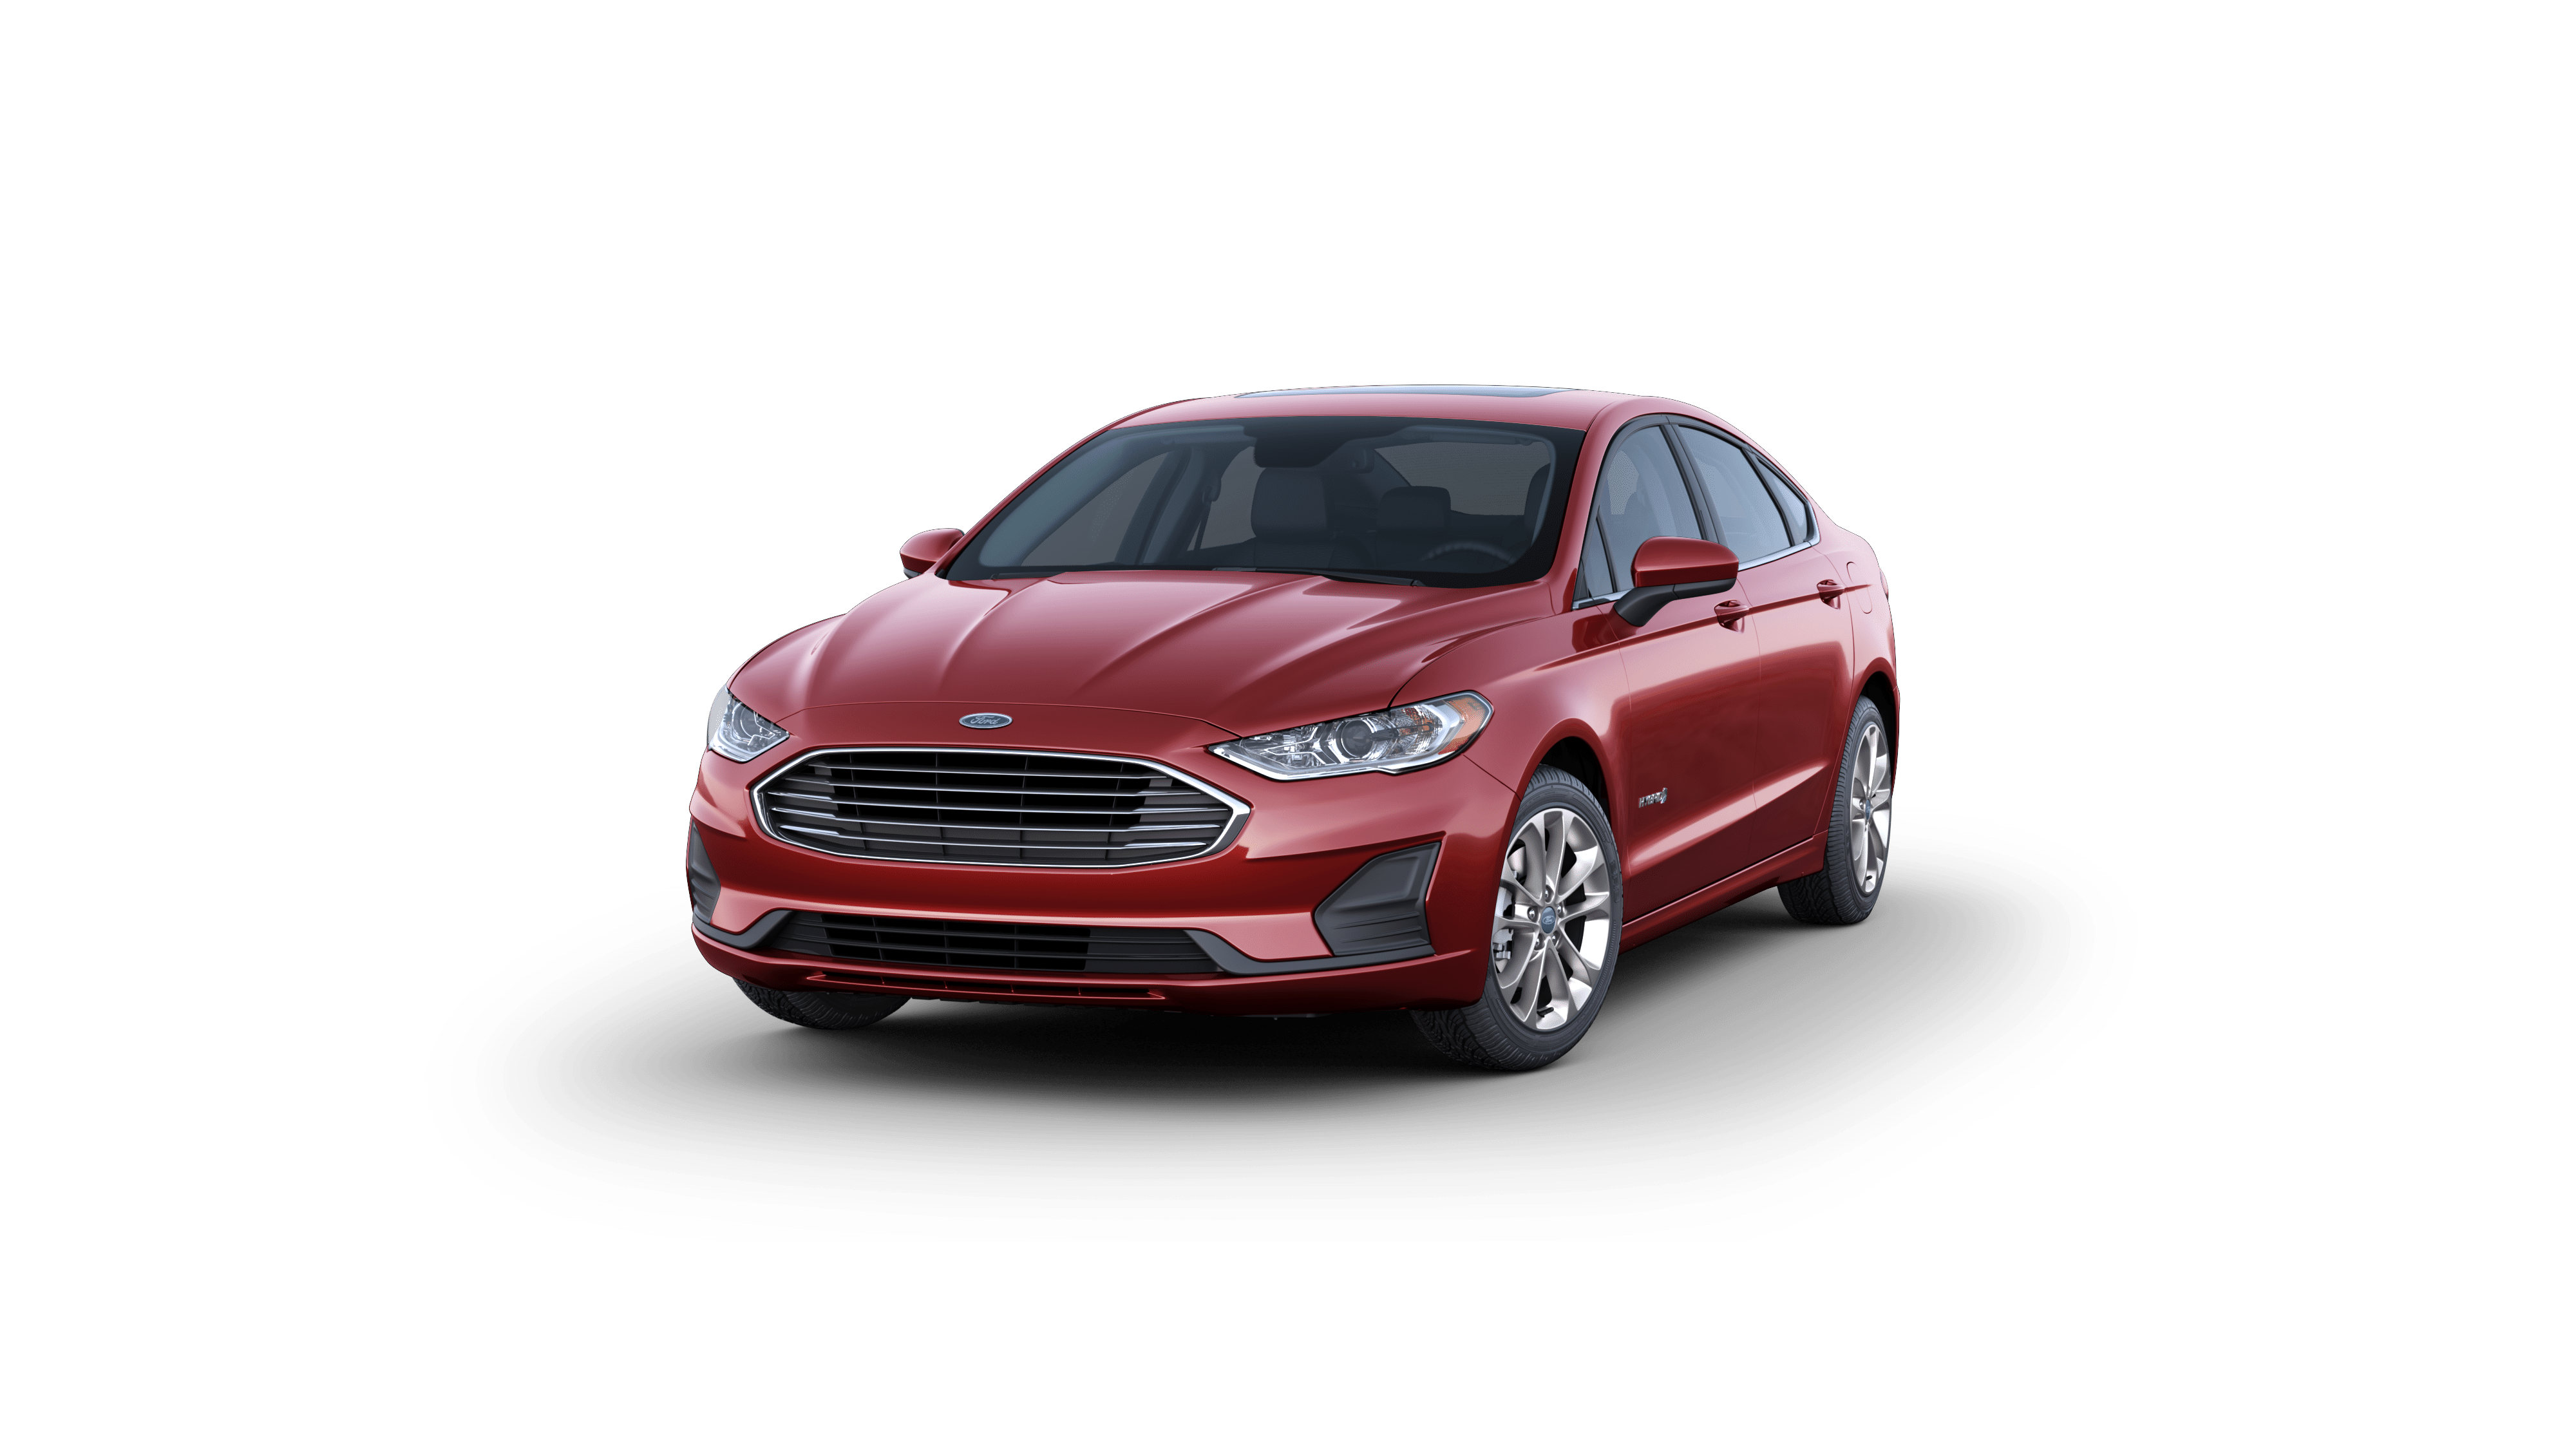 2019 Ford Fusion Hybrid Vehicle Photo in Souderton, PA 18964-1038